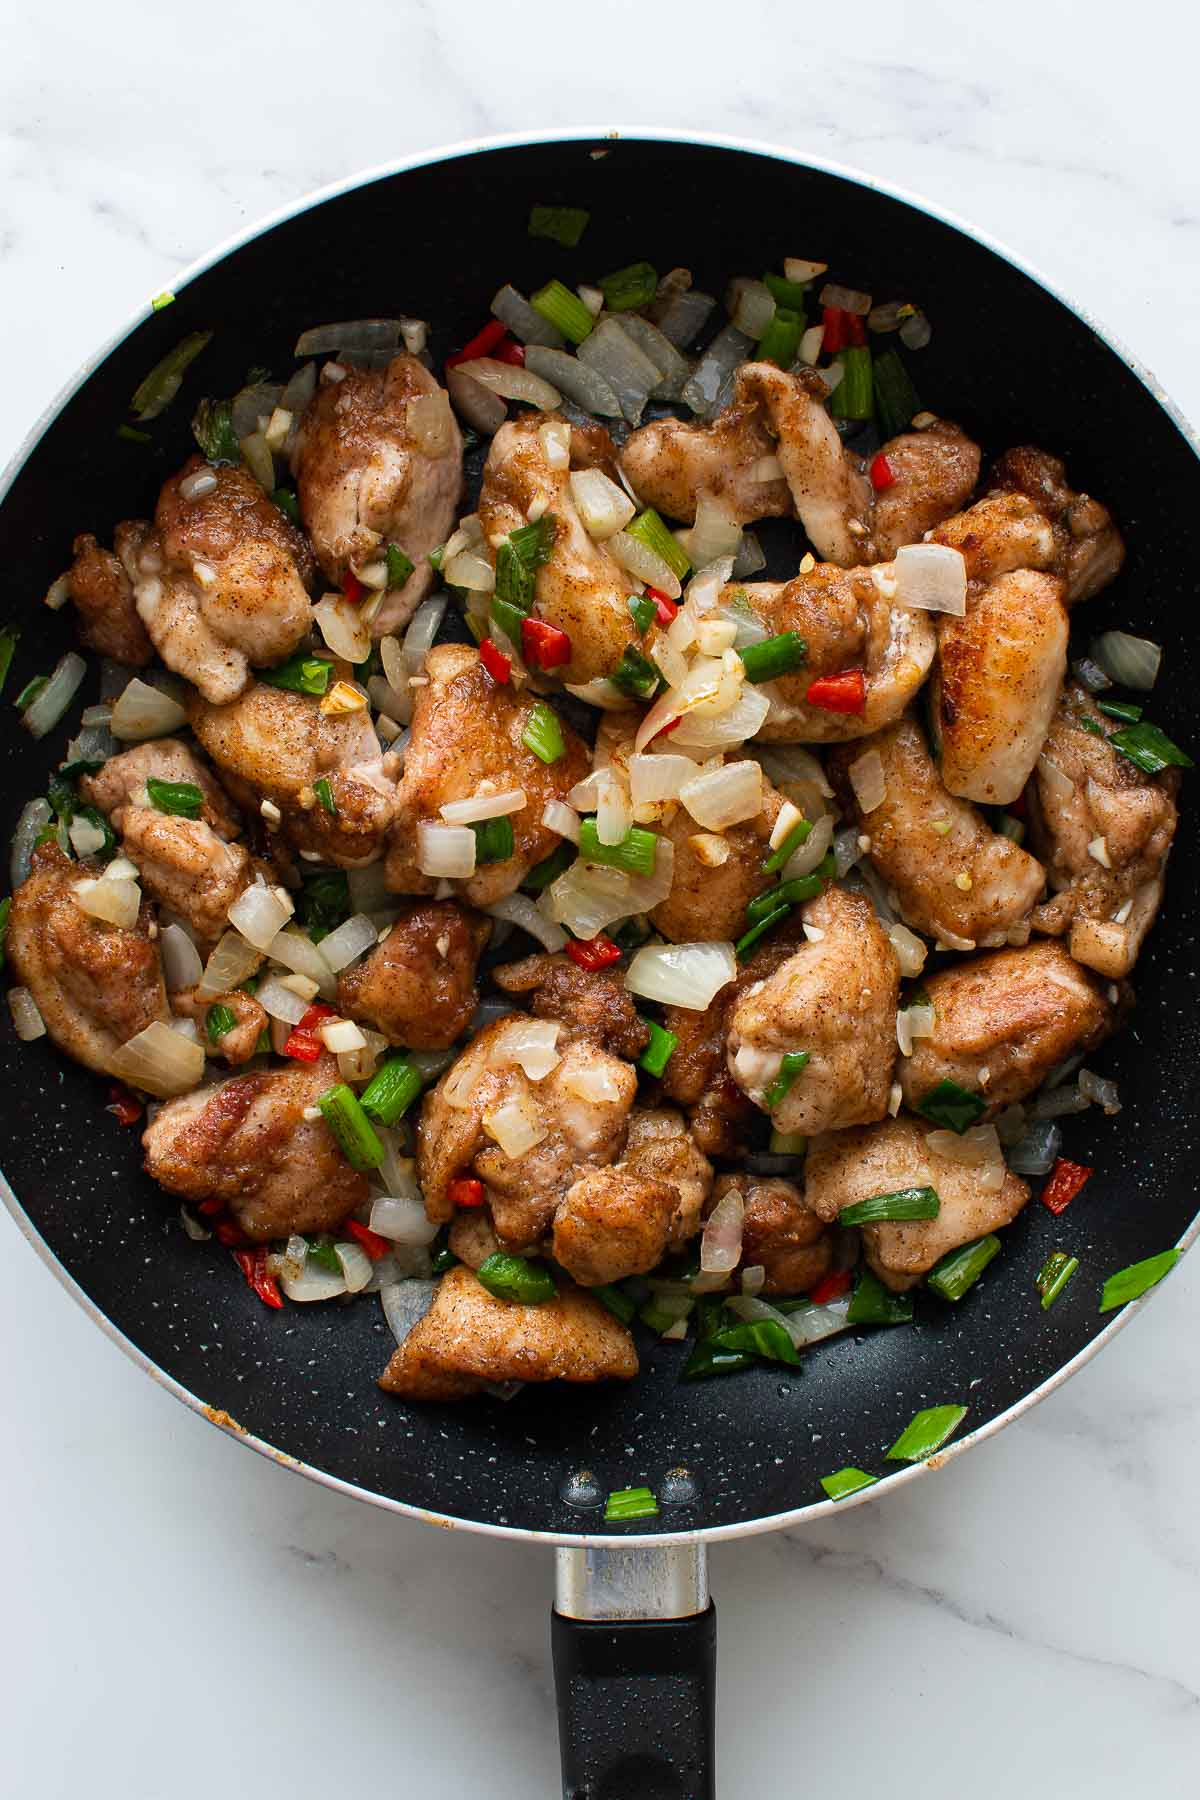 A skillet with salt and pepper chicken with chili.